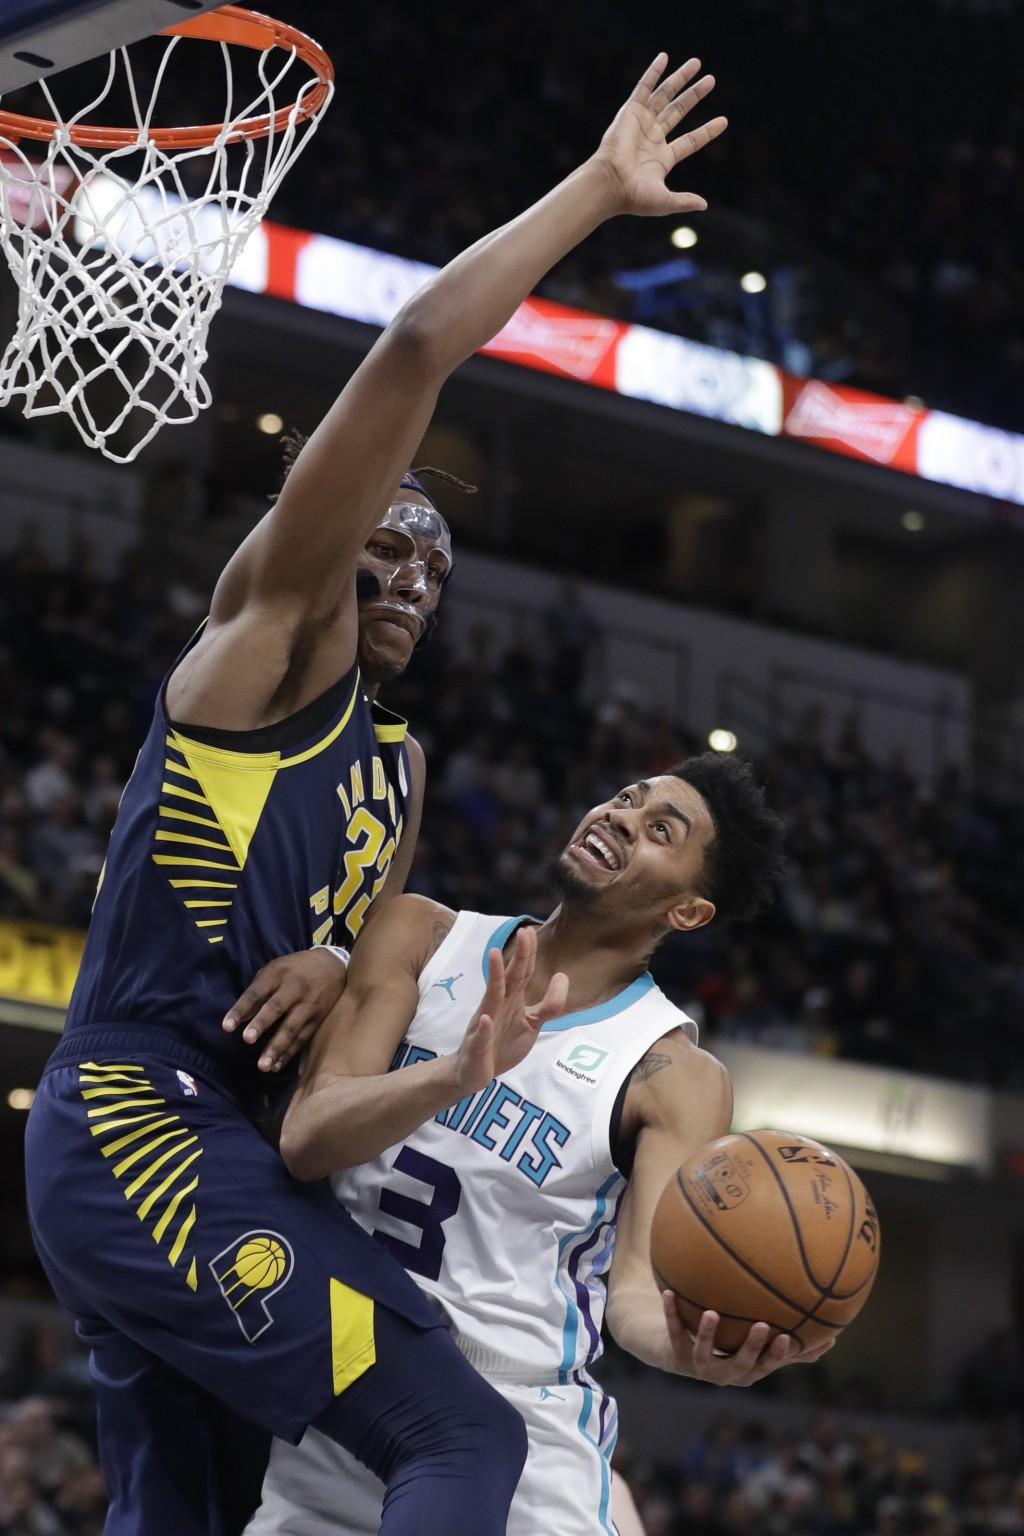 Charlotte Hornets' Jeremy Lamb (3) puts up a shot against Indiana Pacers' Myles Turner during the first half of an NBA basketball game, Monday, Feb. 1